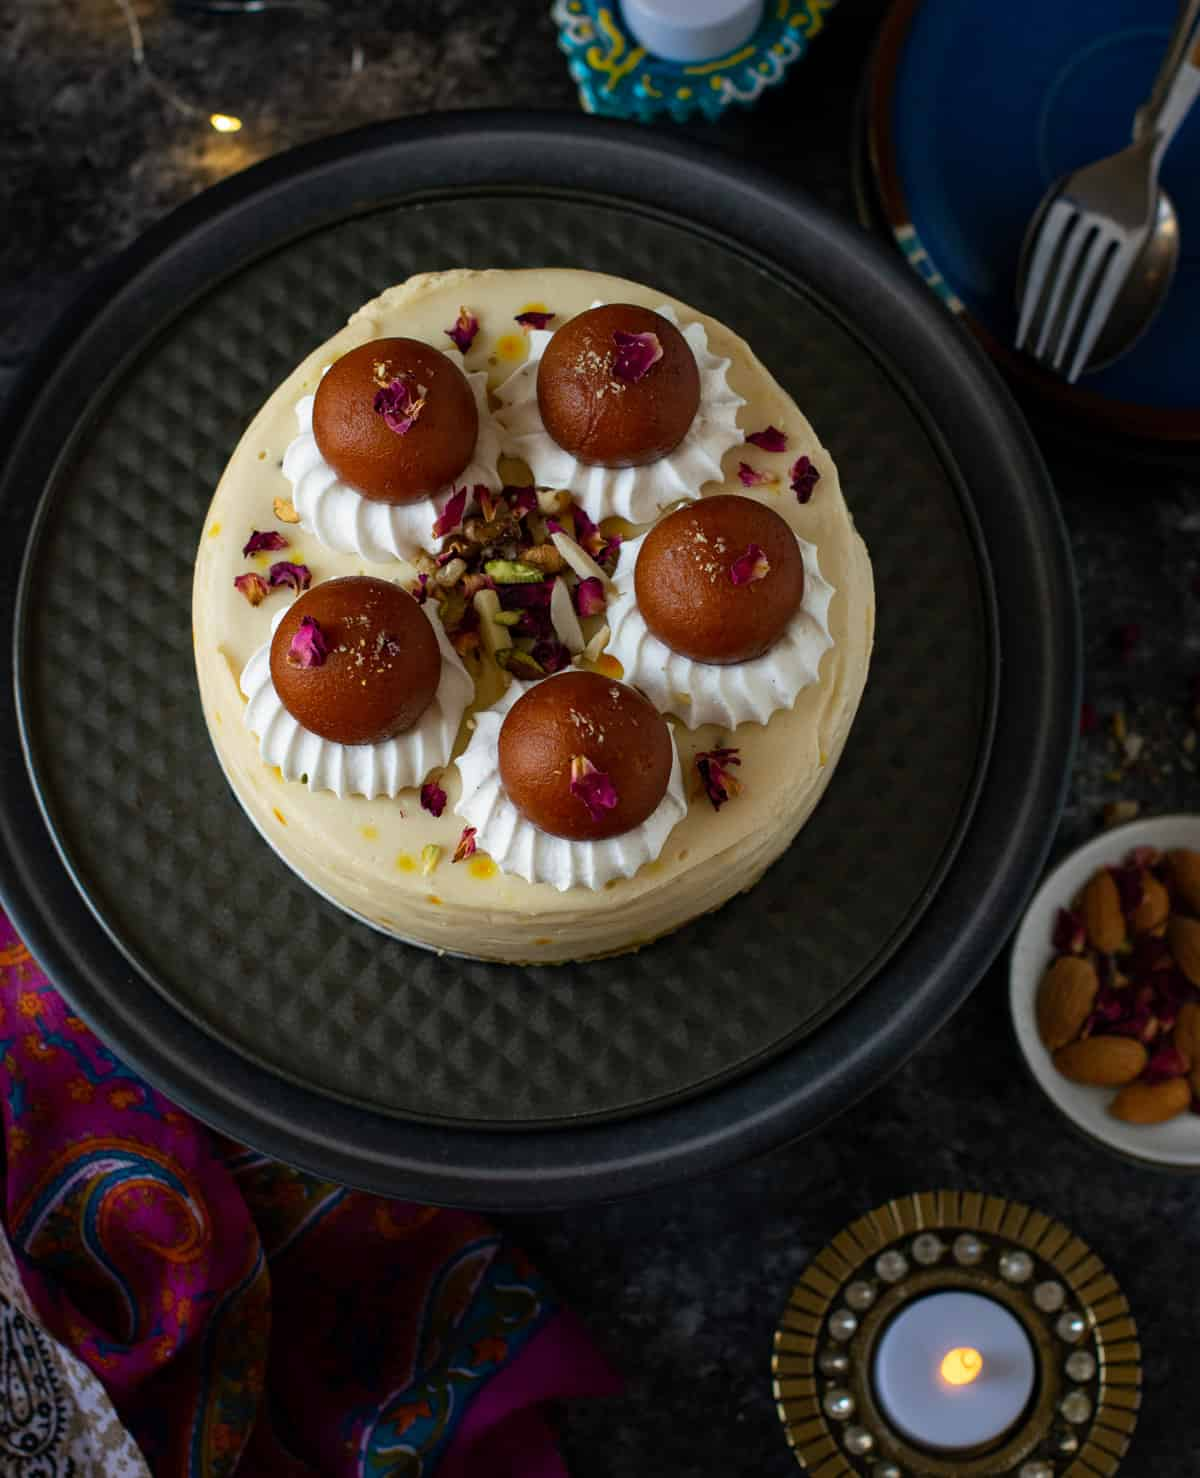 Cheesecake topped with gulab jamun with a side of nuts